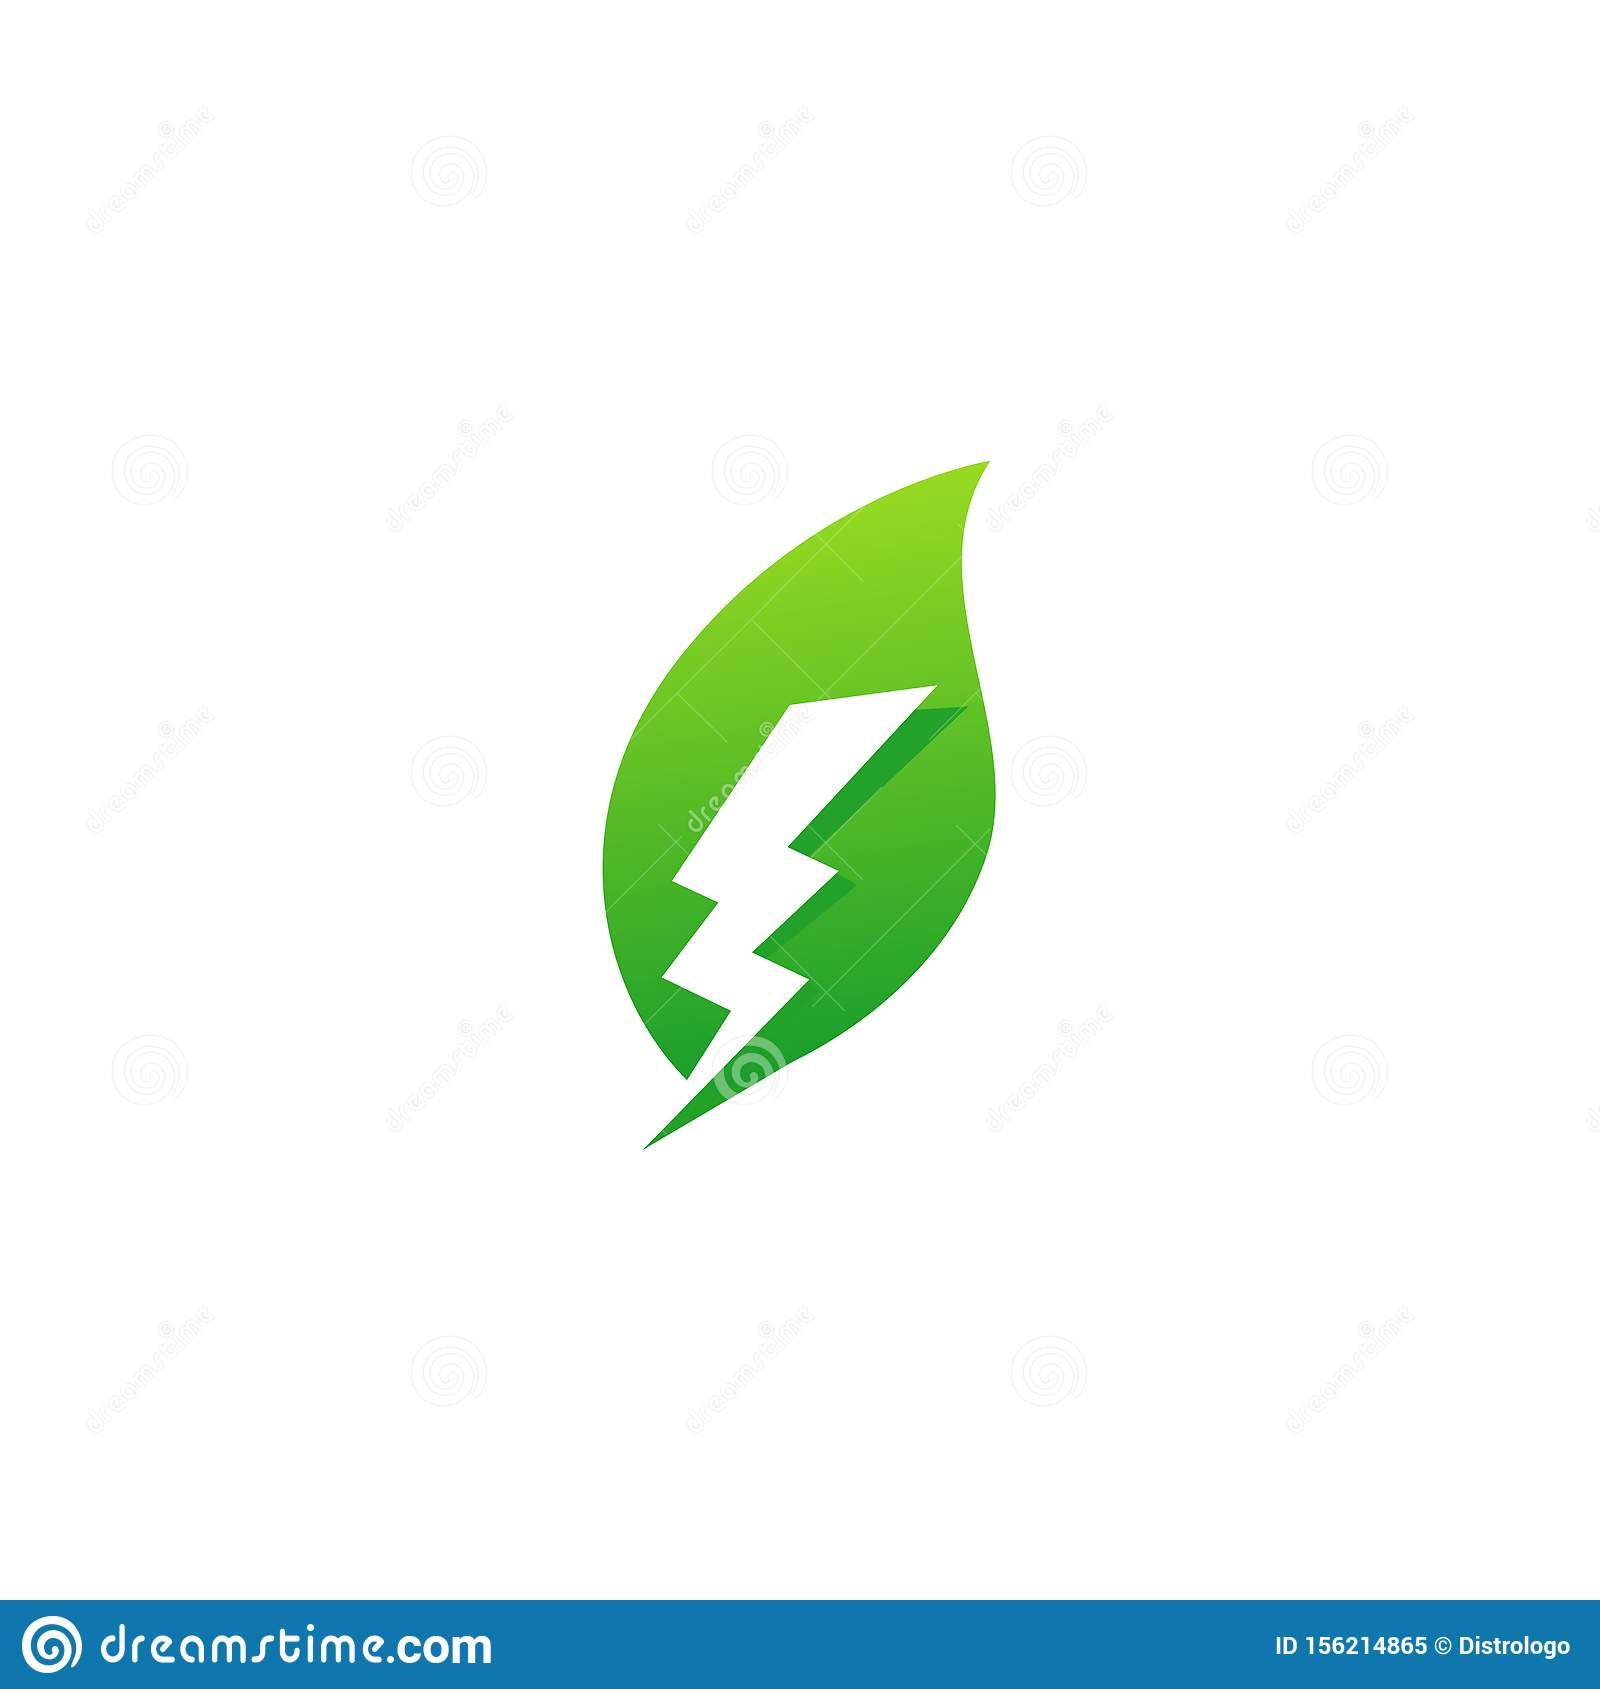 green energy logo design element power energy icon symbol design stock vector illustration of logo technology 156214865 https www dreamstime com green energy logo design element power icon symbol designs image156214865